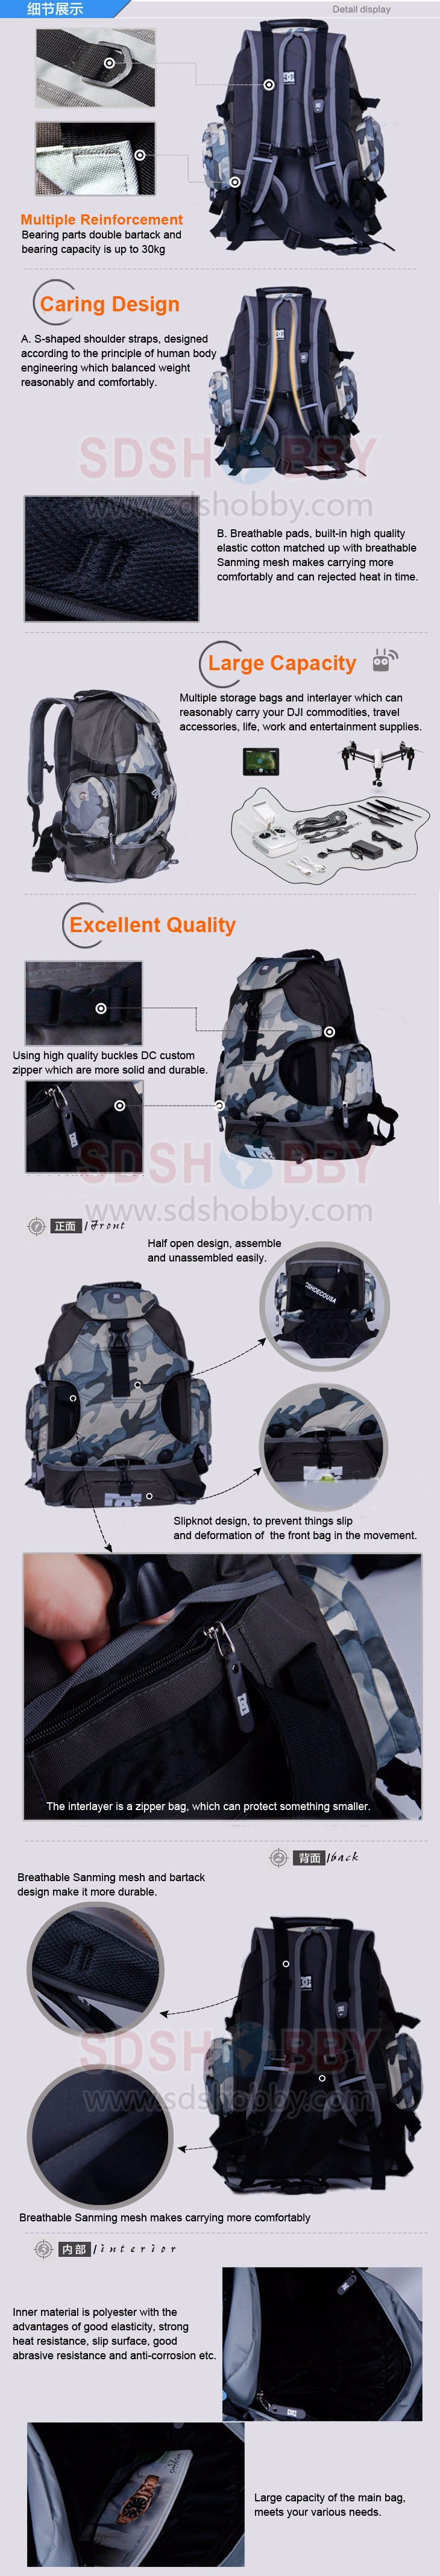 DJI Inspire 1 Accessory Waterproof Shoulder Backpack Multifunctional Backpack Carrying Bag